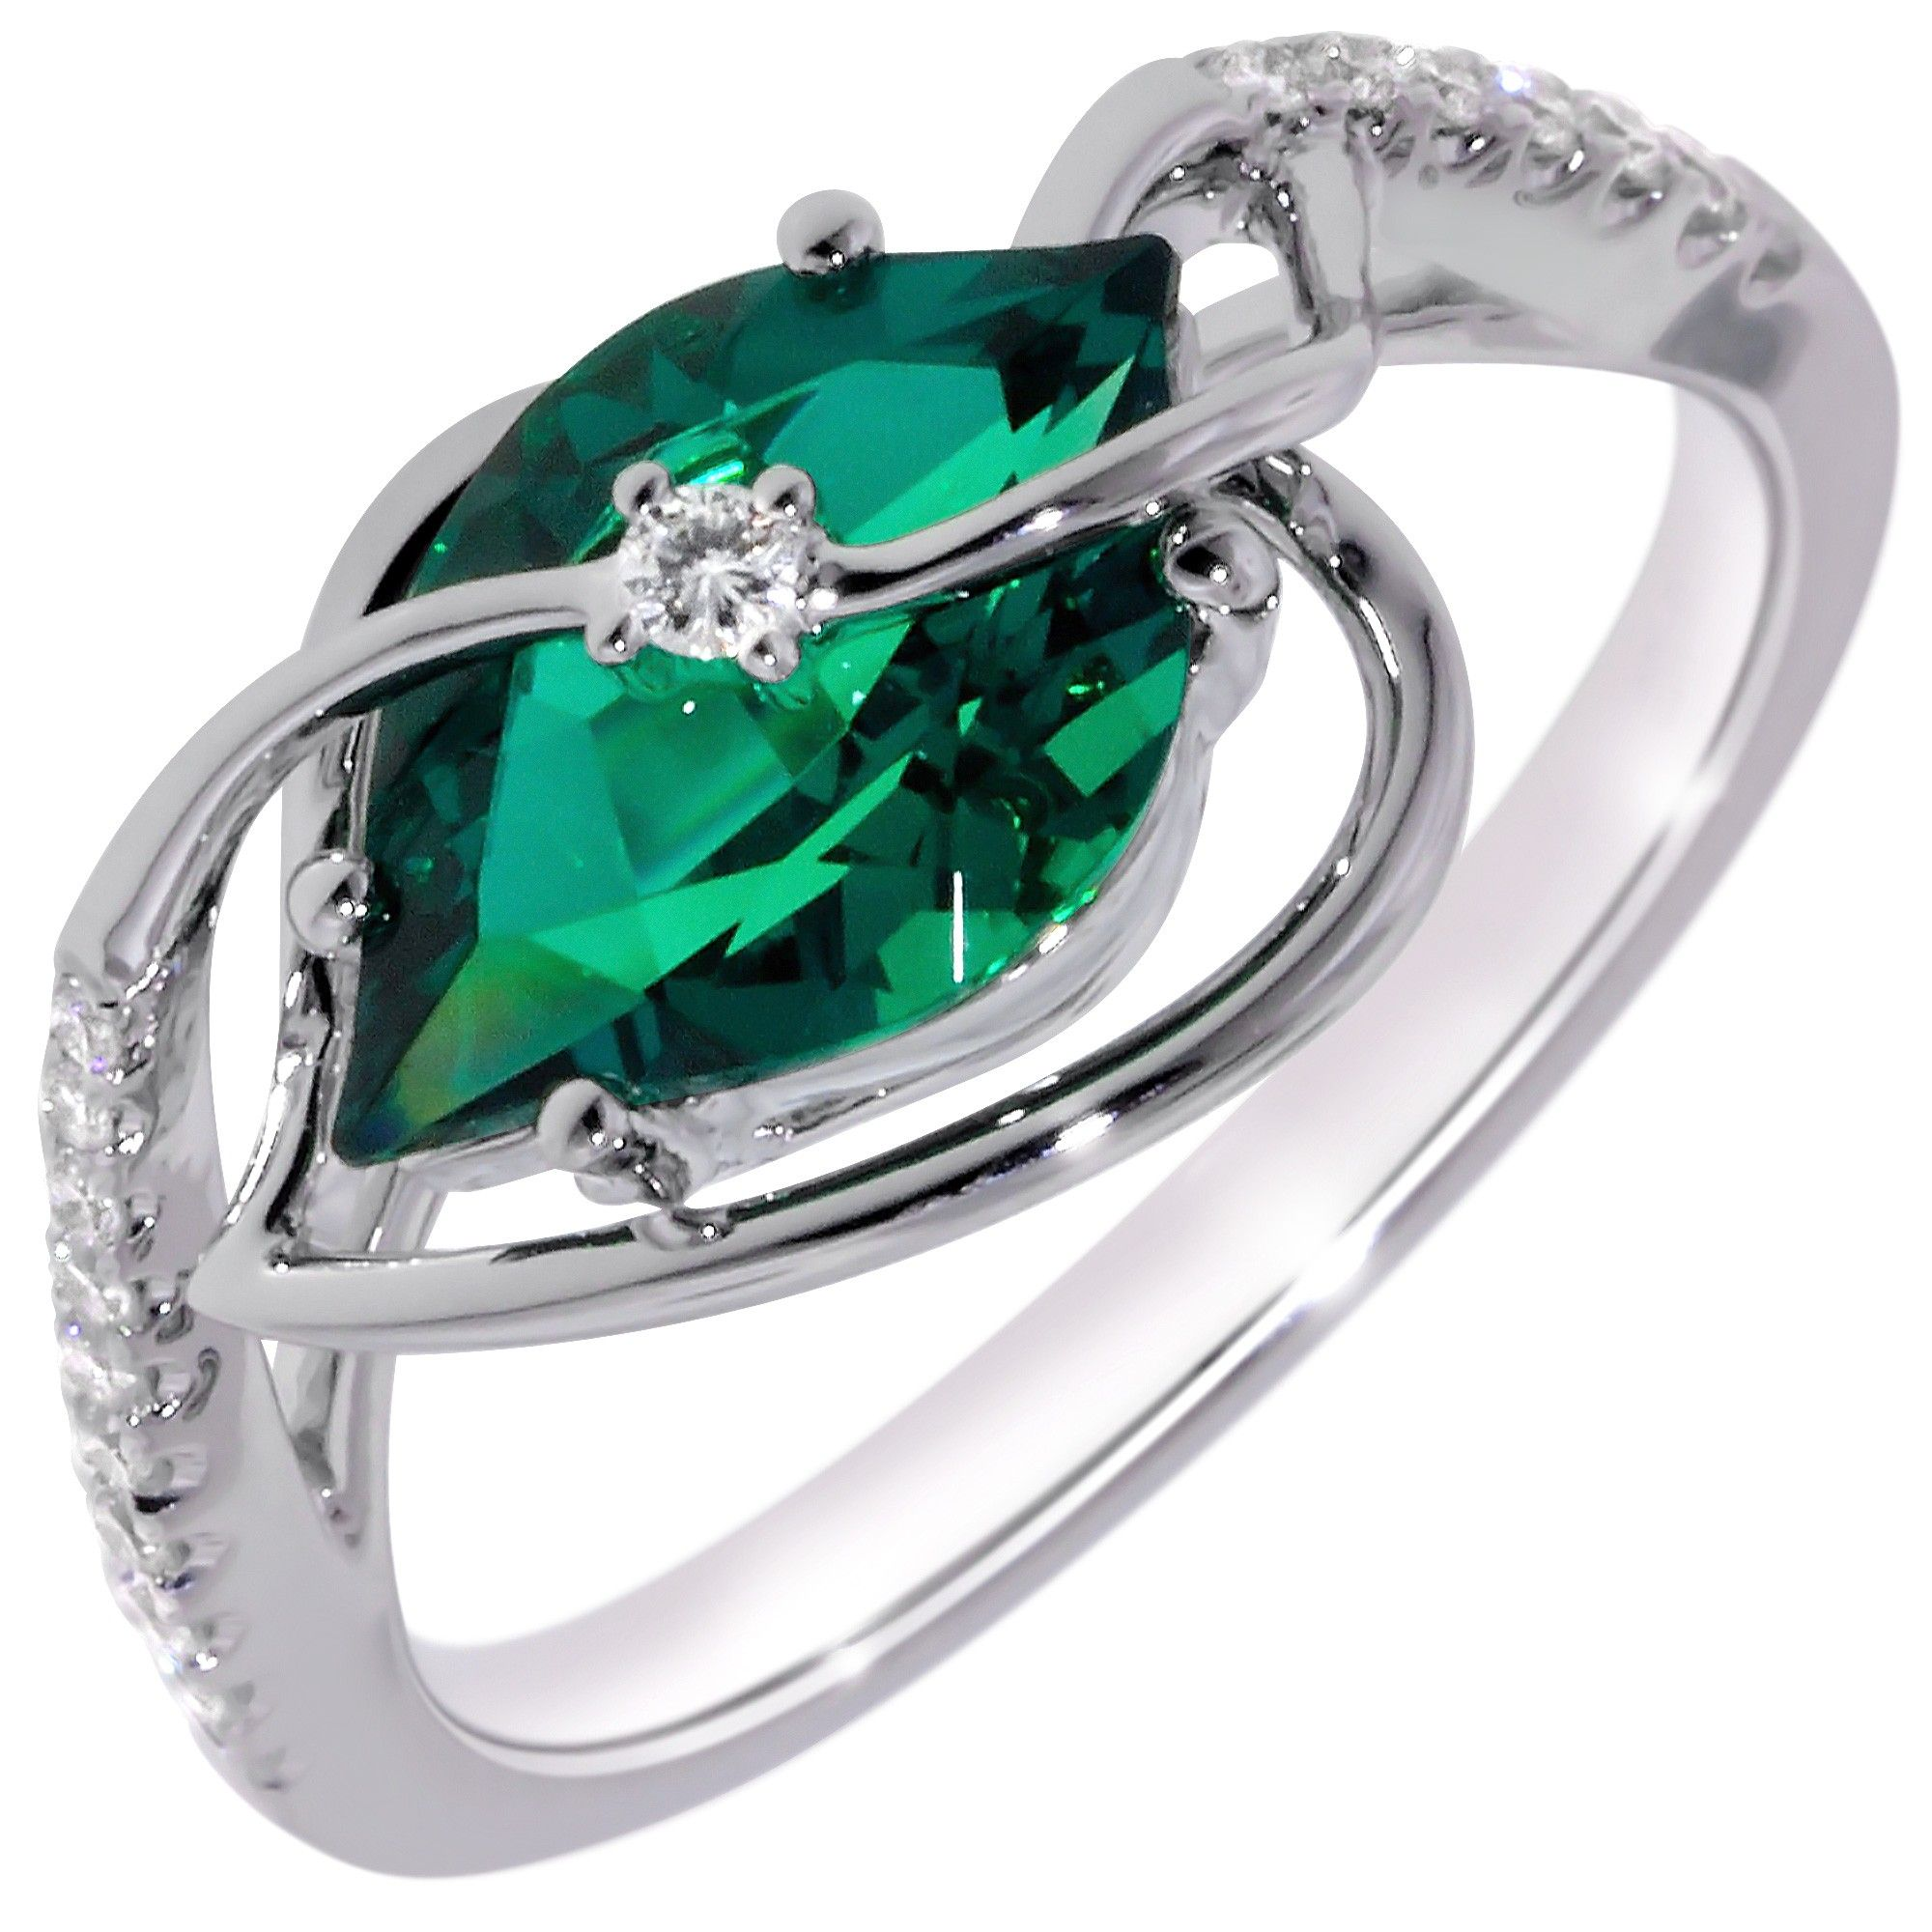 chatham cultured created emerald ring in 14kt white gold